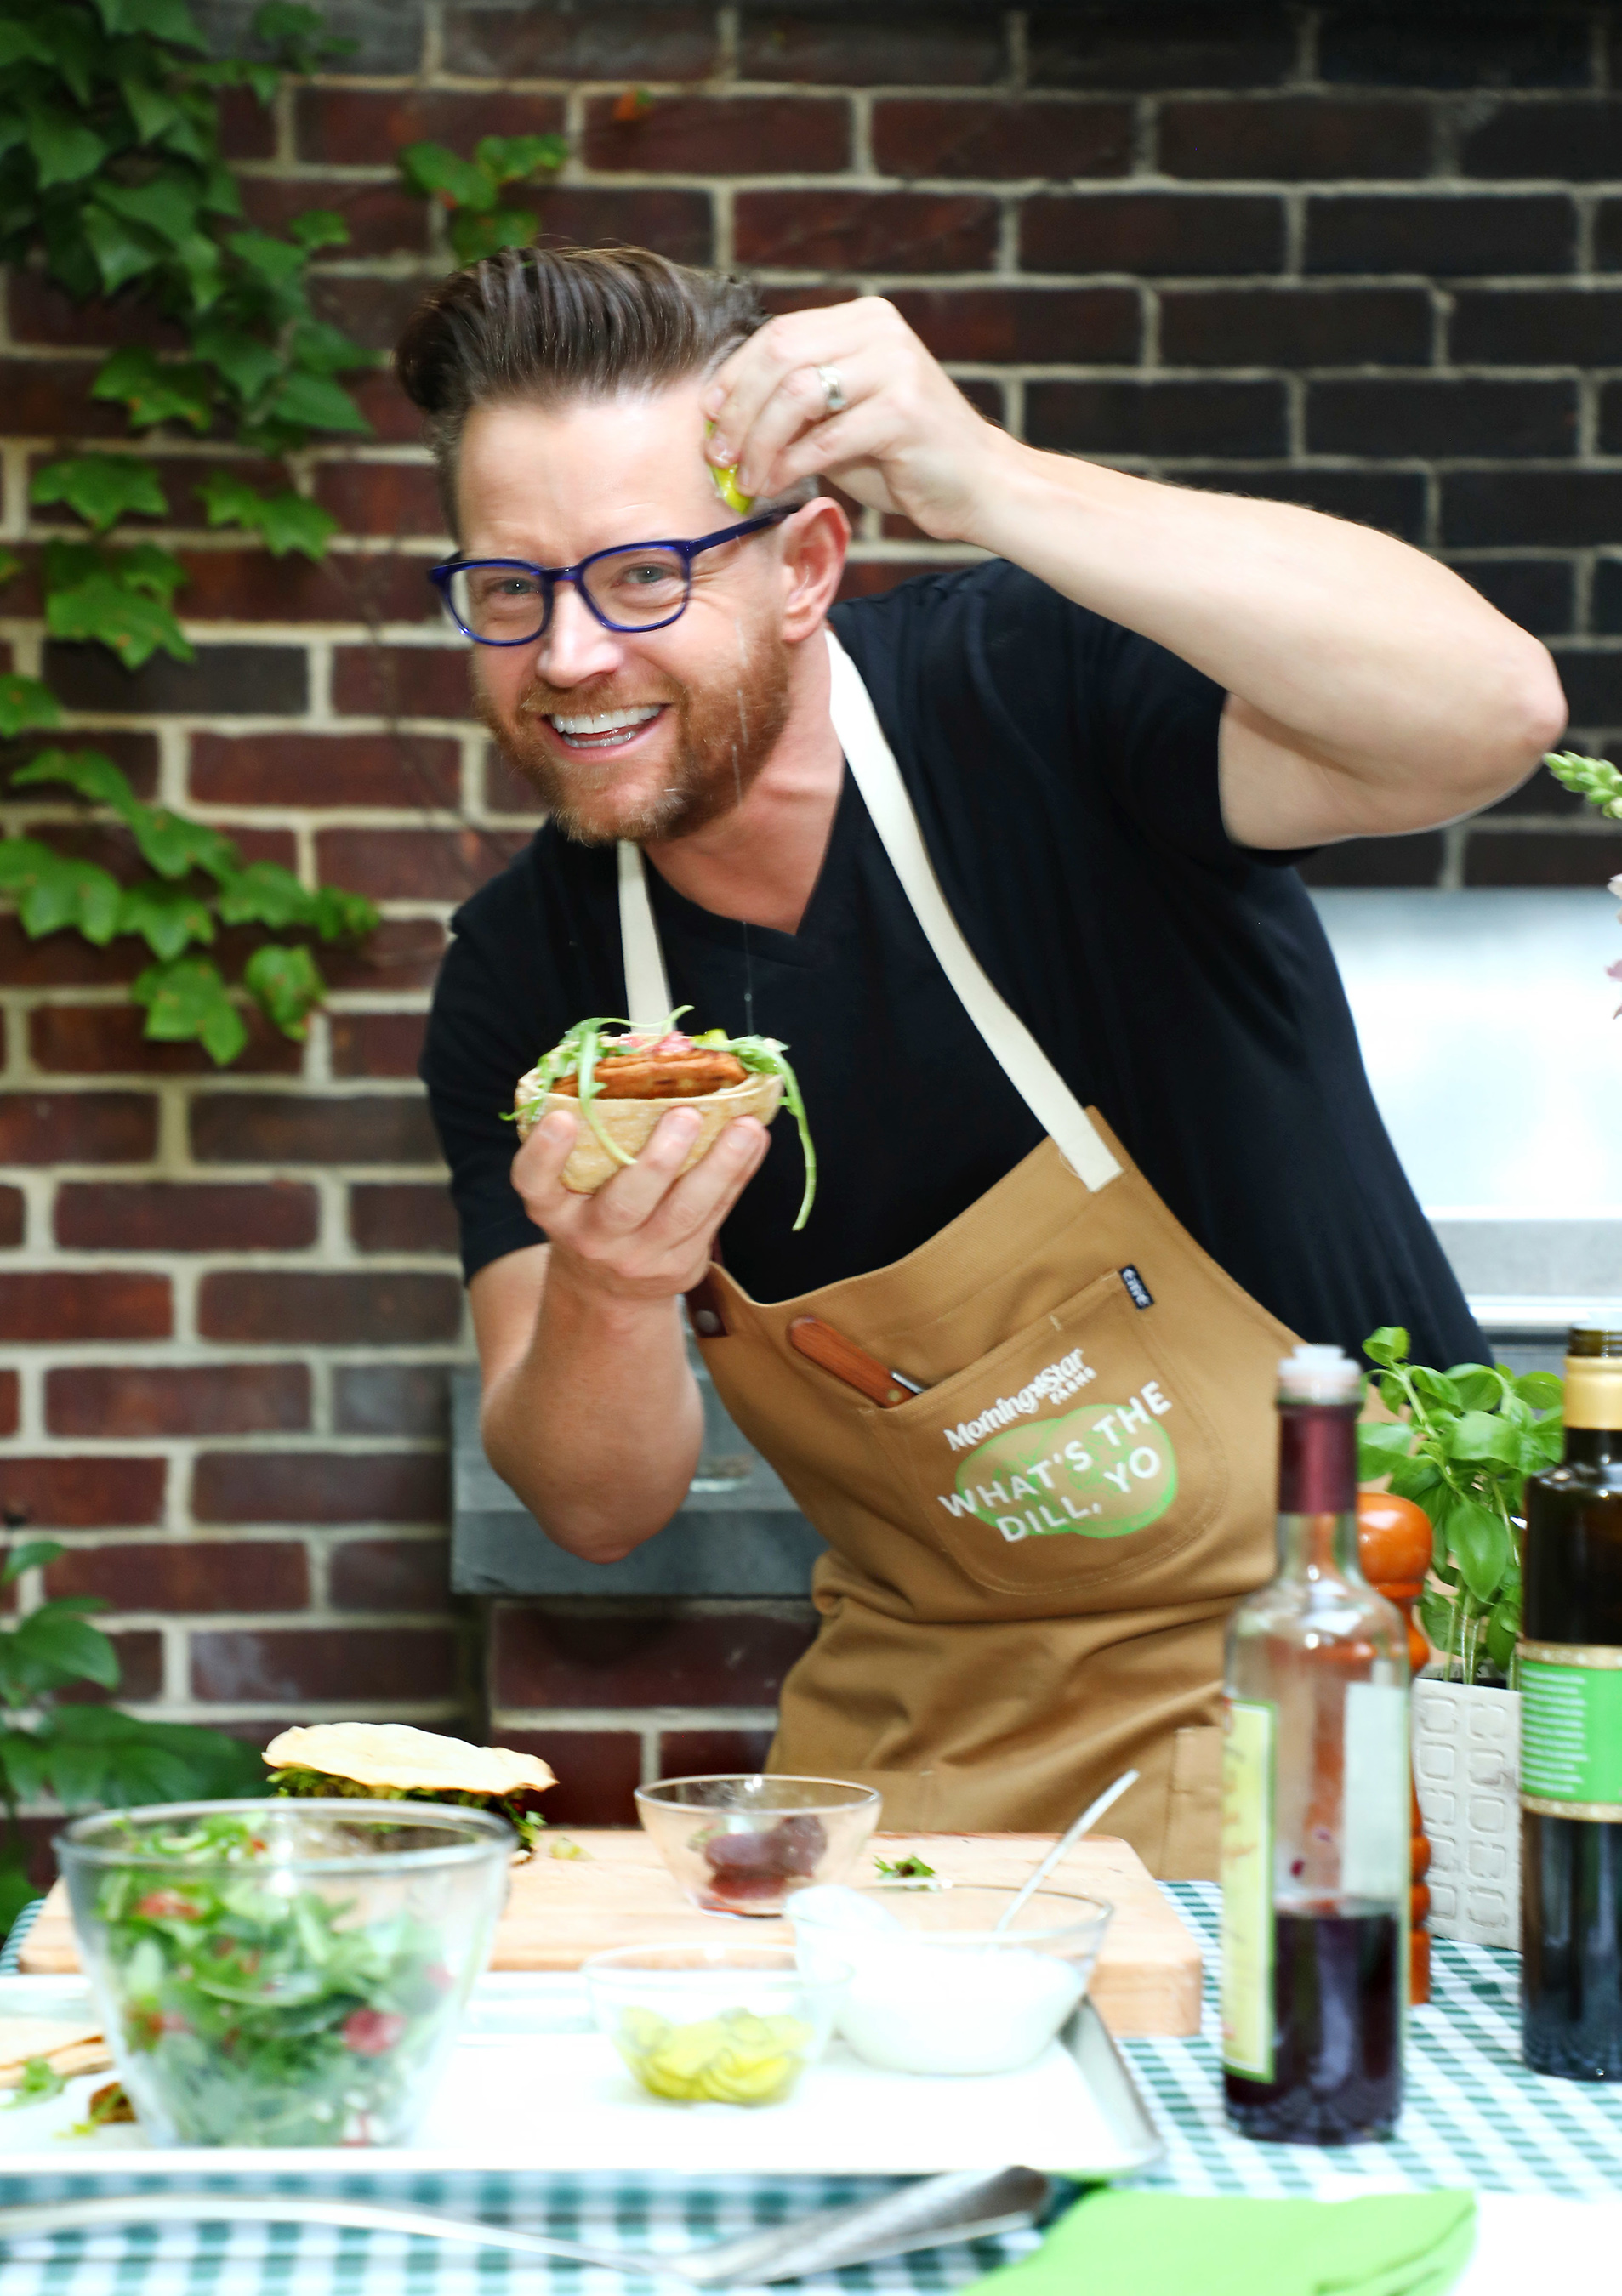 Chef Richard Blais prepares four new MorningStar Farms® veggie burger recipes at a backyard cookout in New York City, on July 26, 2017. (Sara Weiss / The Kellogg Company)